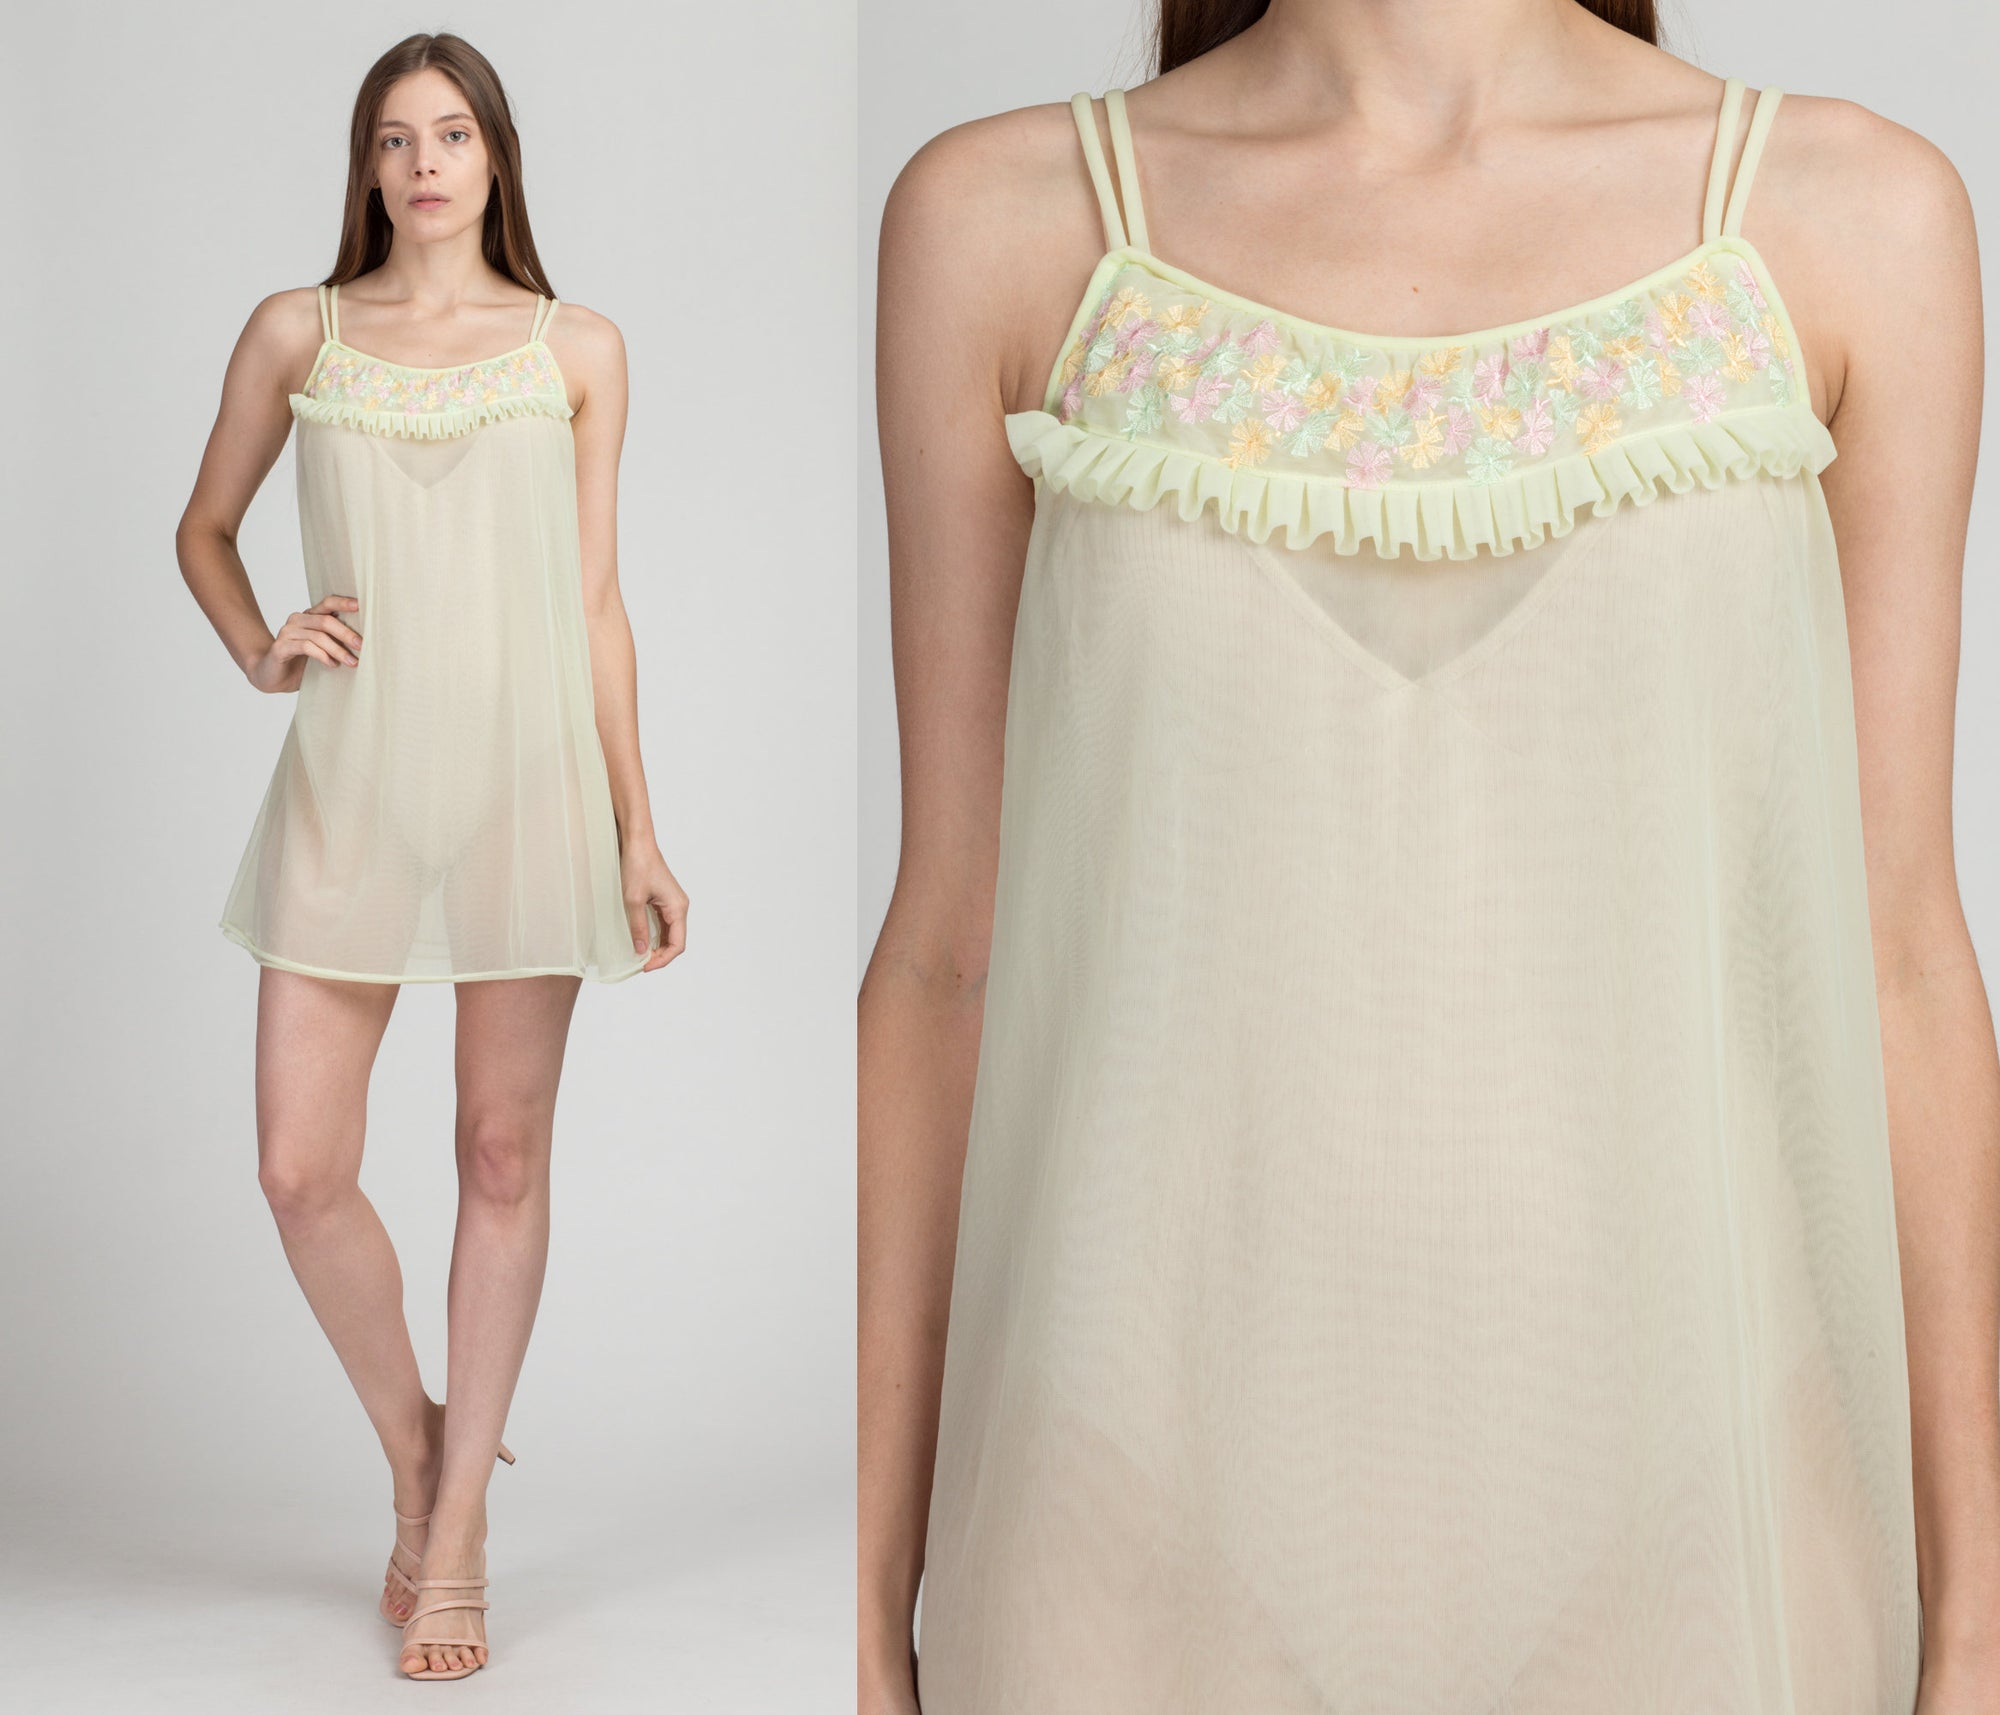 60s Mint Green Floral Trim Babydoll Nightie - Medium | Vintage Sheer Peignoir Mini Negligee Slip Dress